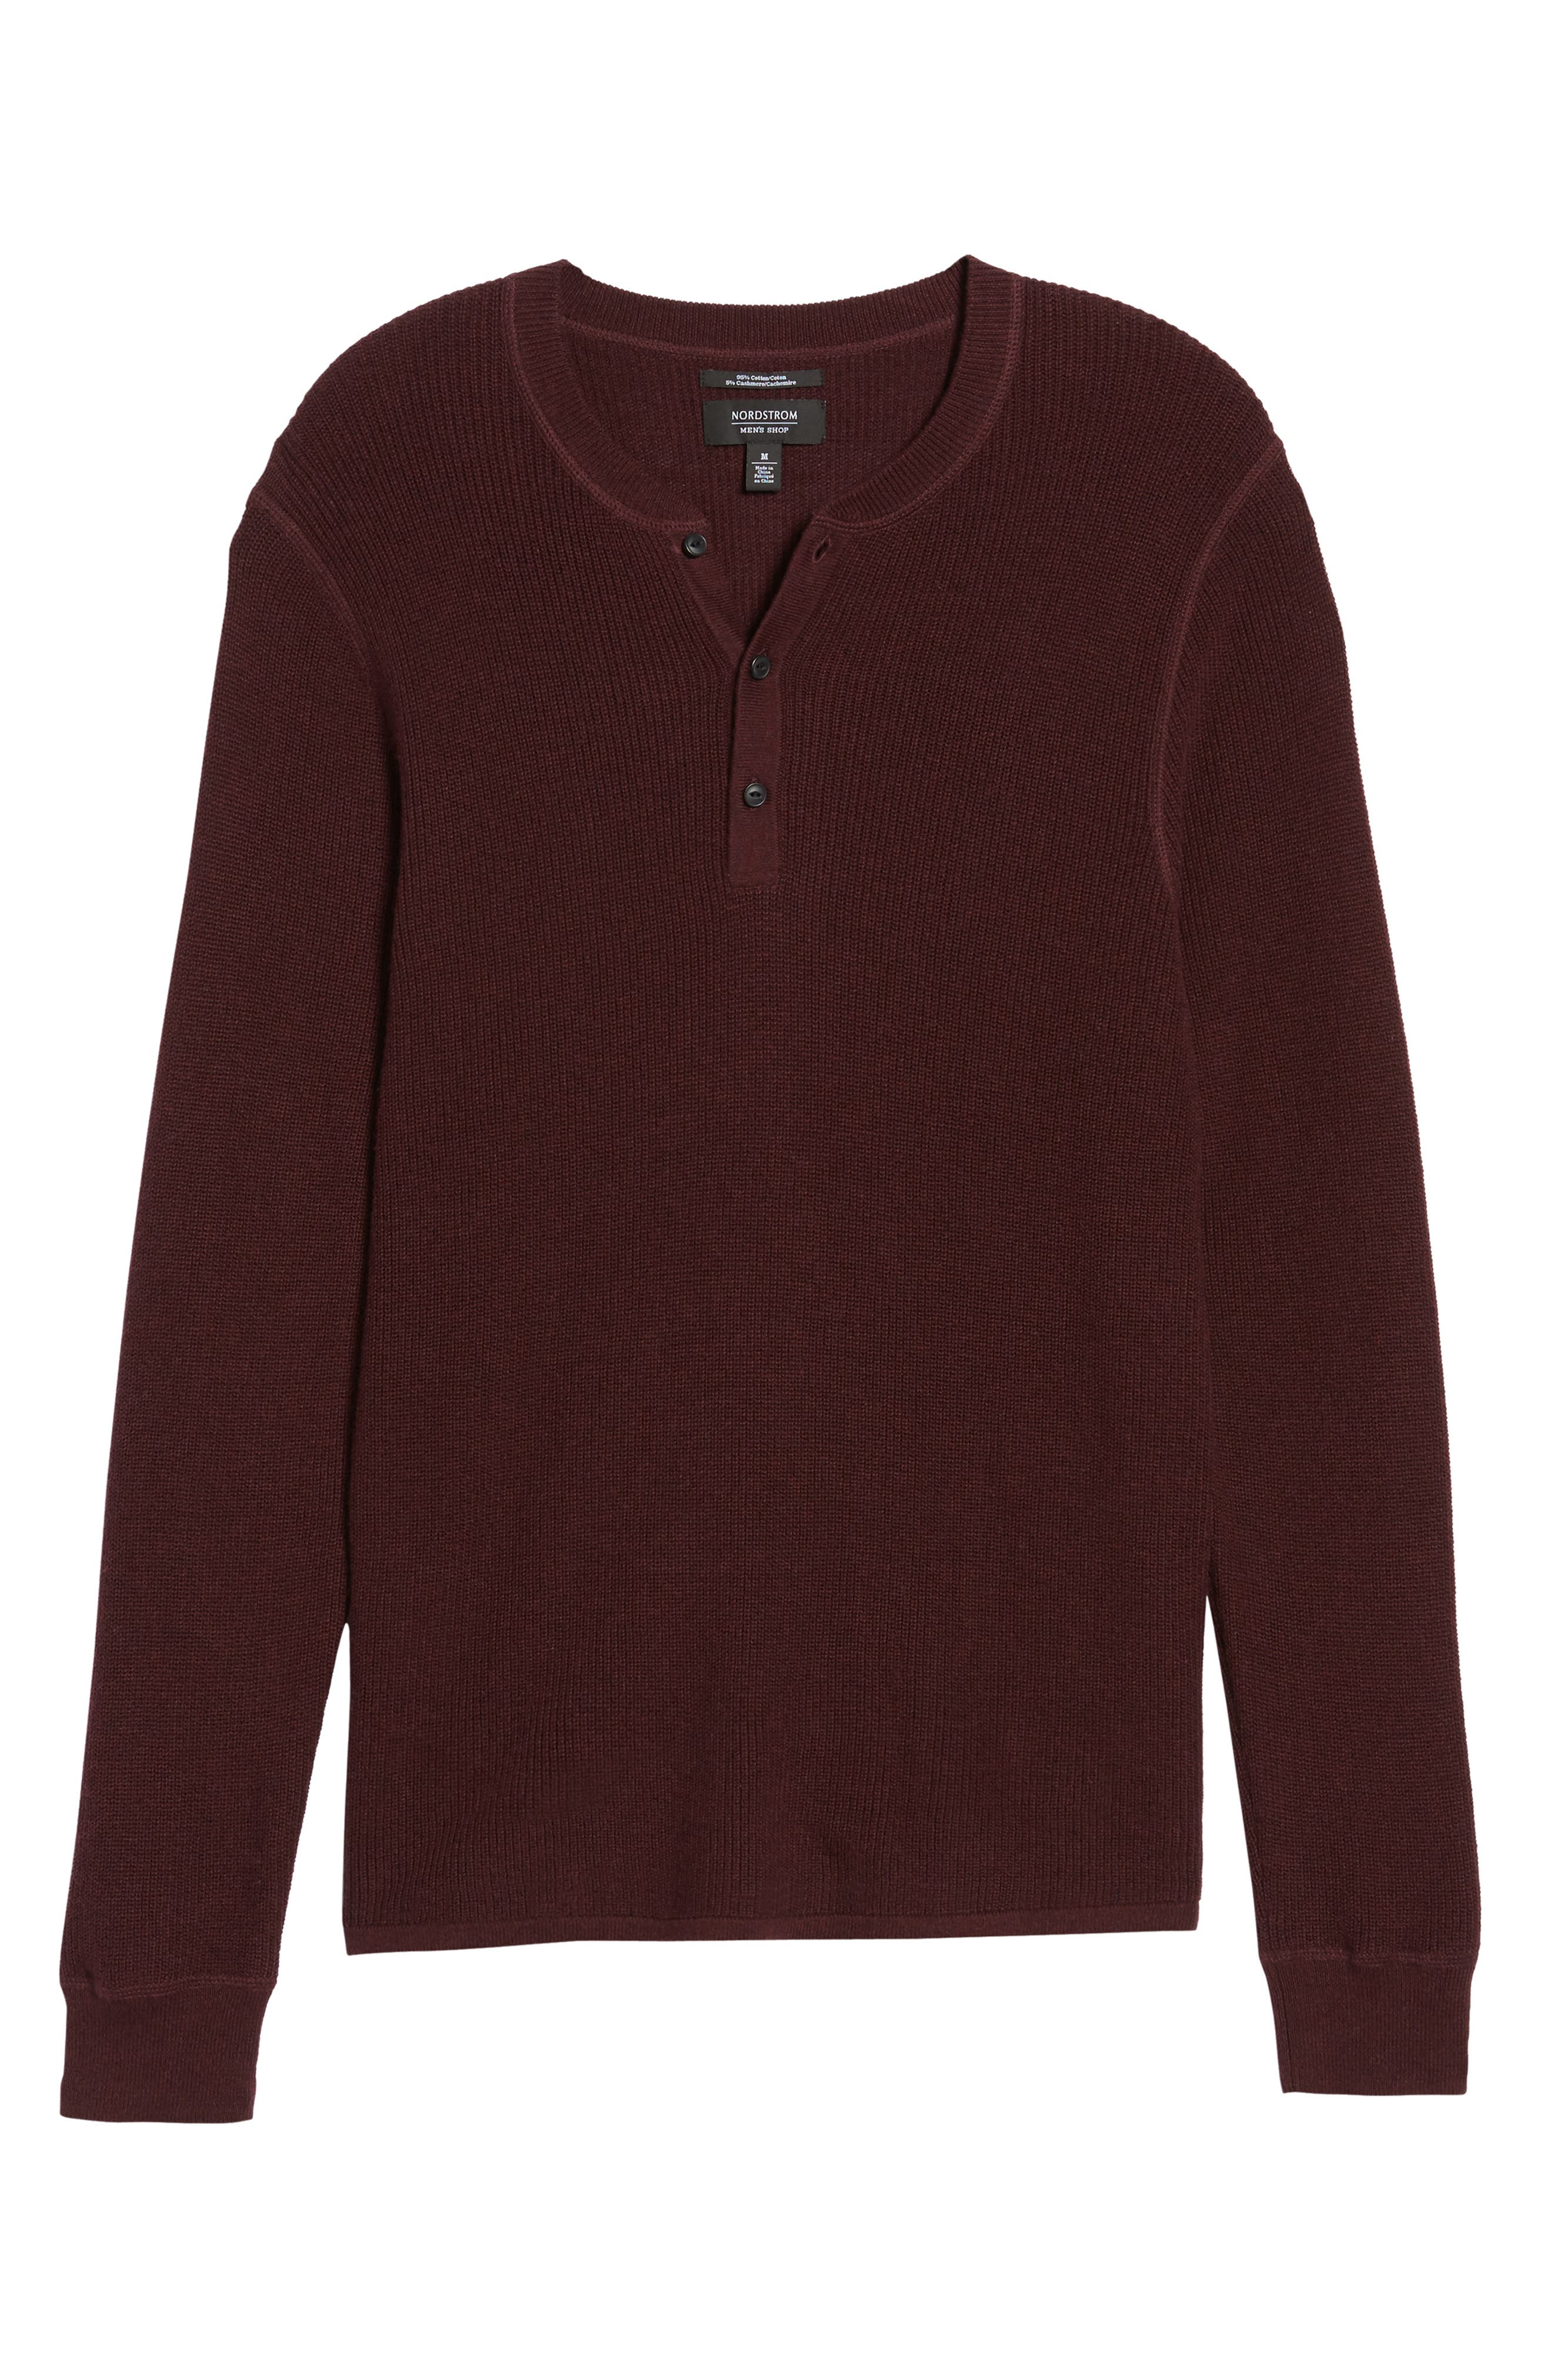 Cotton & Cashmere Henley Sweater,                             Alternate thumbnail 6, color,                             Burgundy Fudge Heather